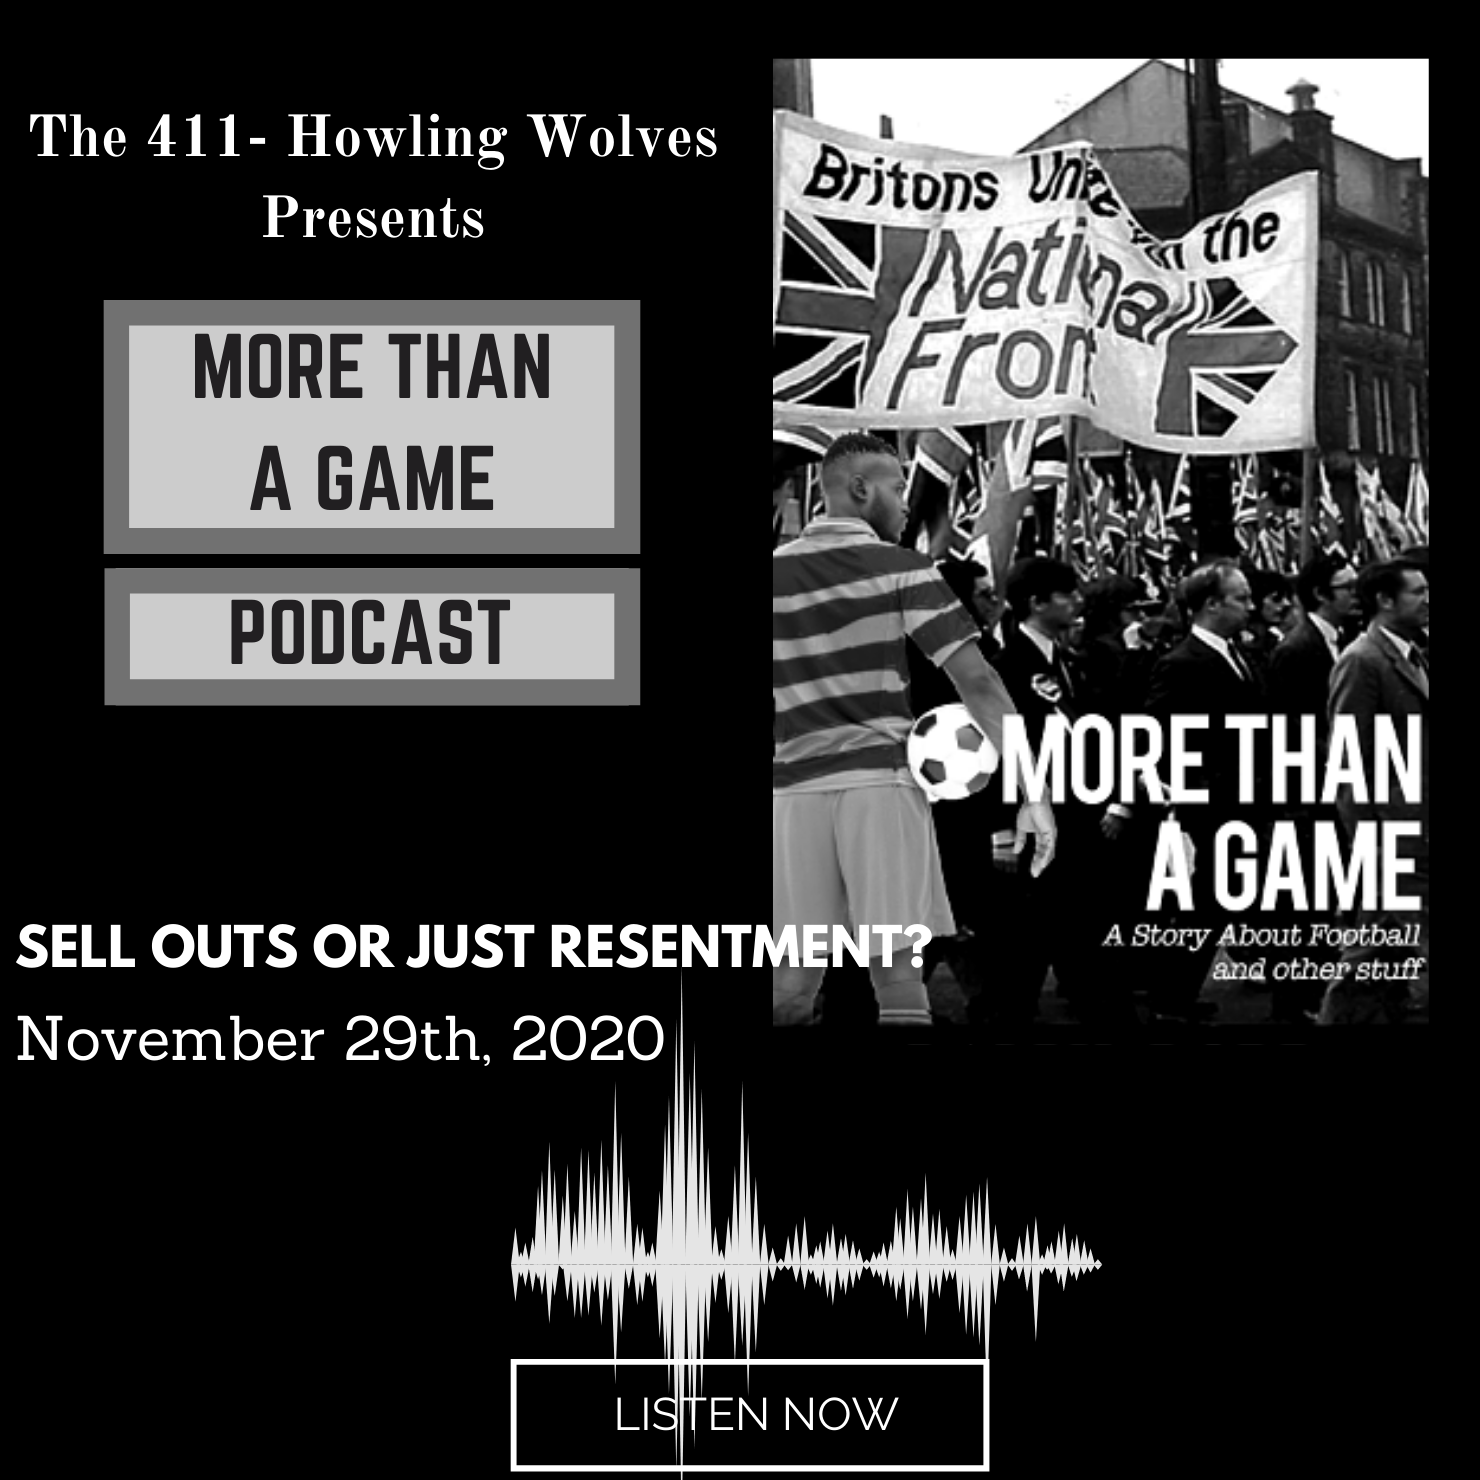 Artwork for podcast More Than a Game